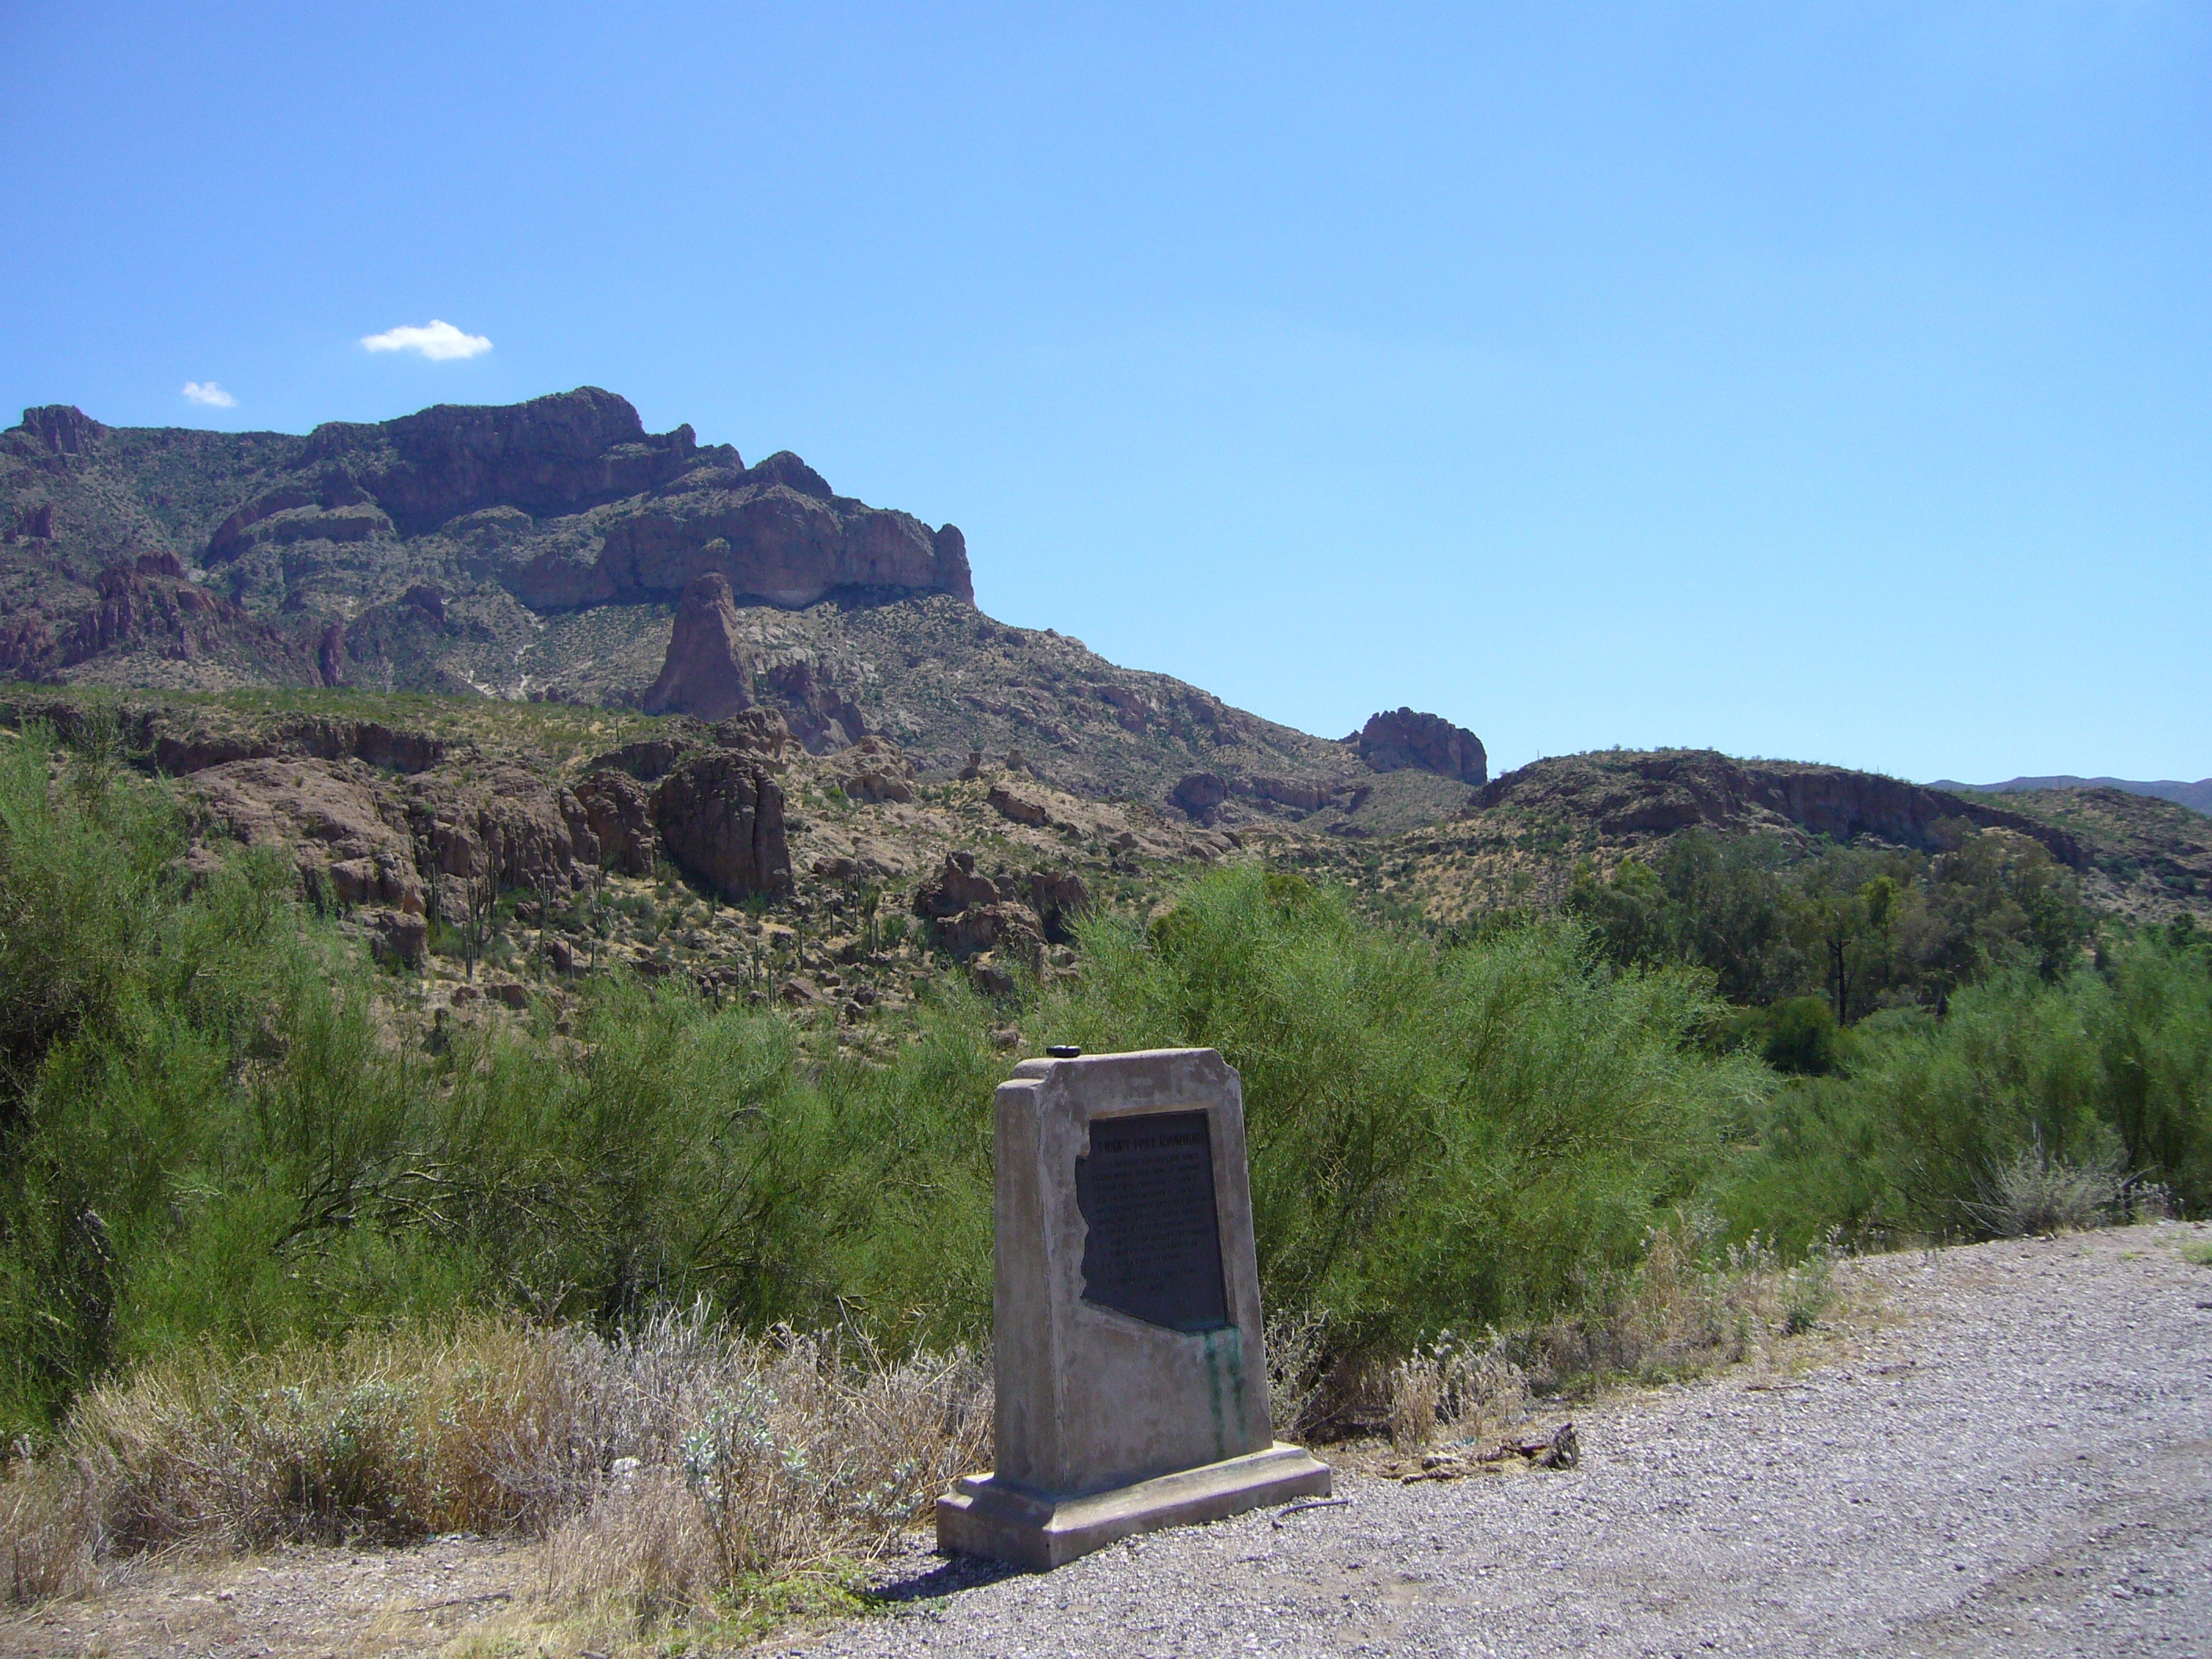 The Marker and Picket Post Mountain